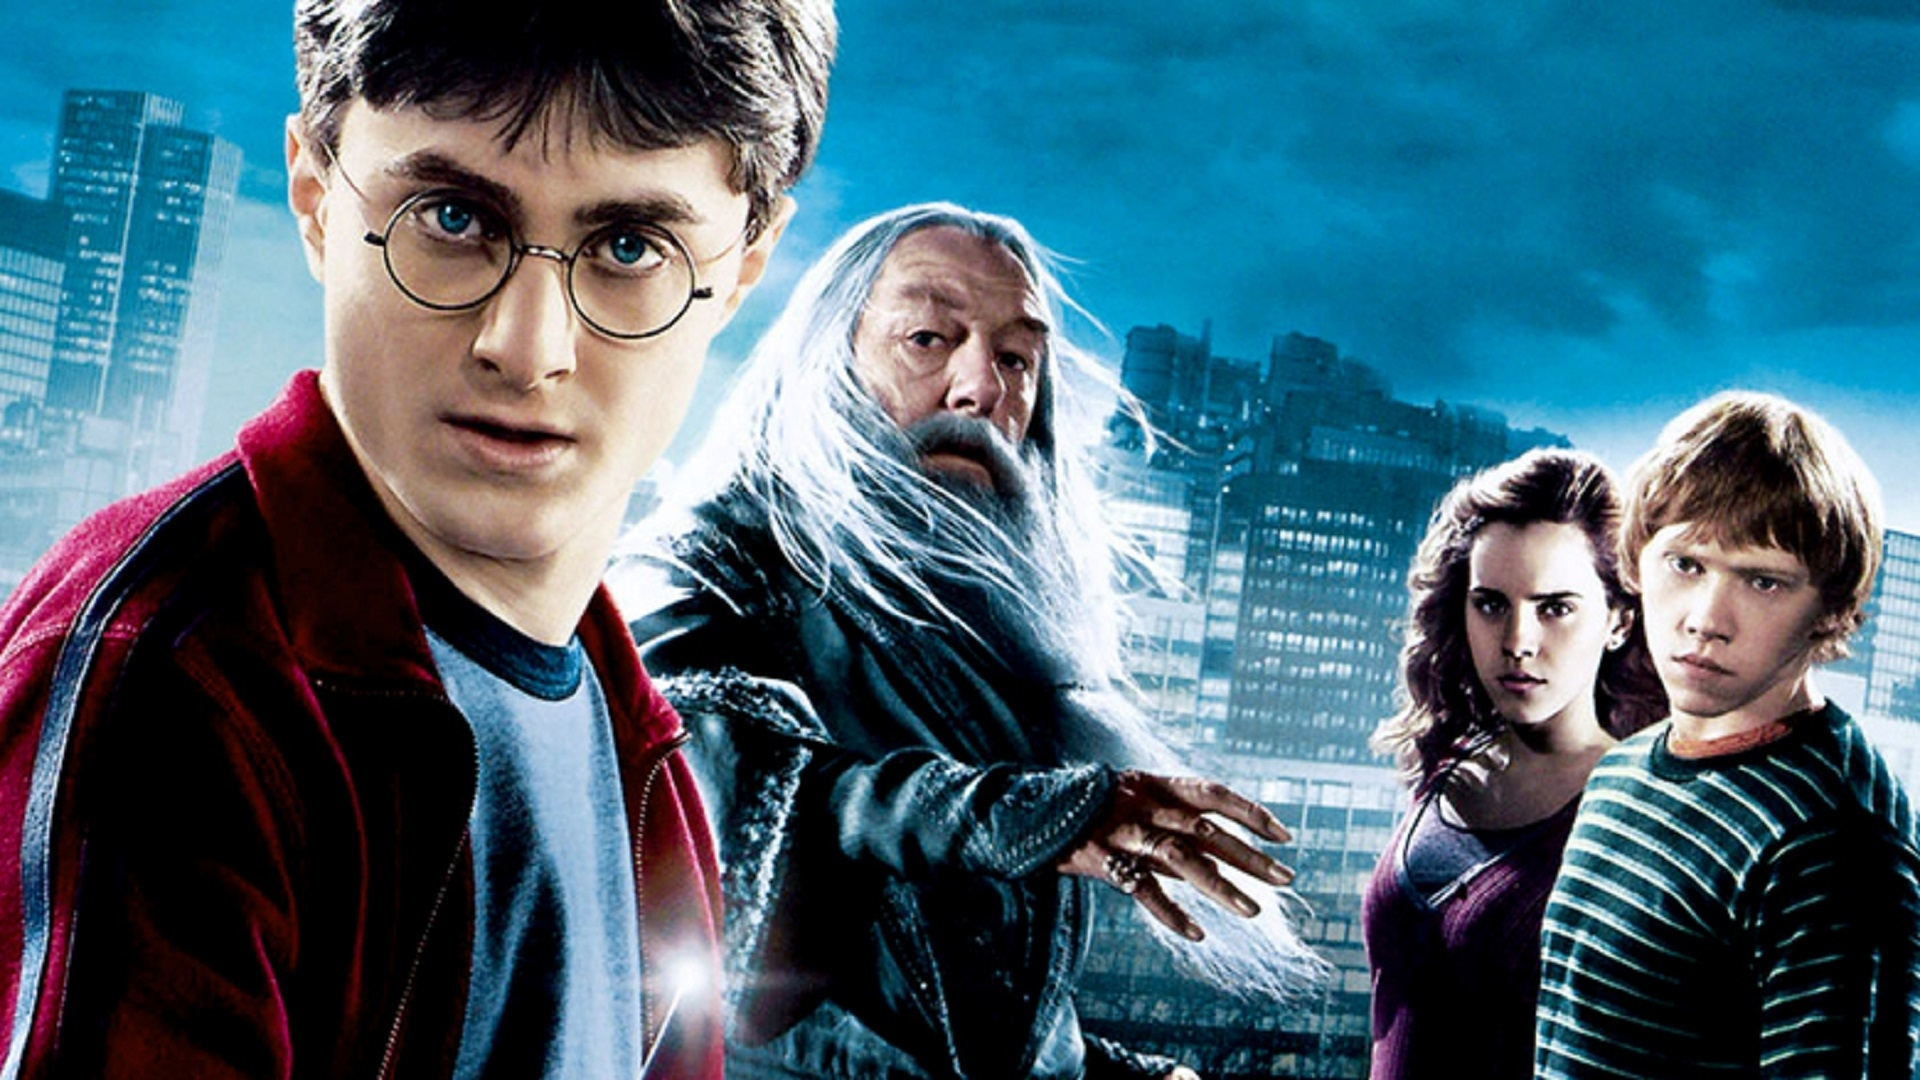 harry potter hd free wallpaper free download - hd wallpaper